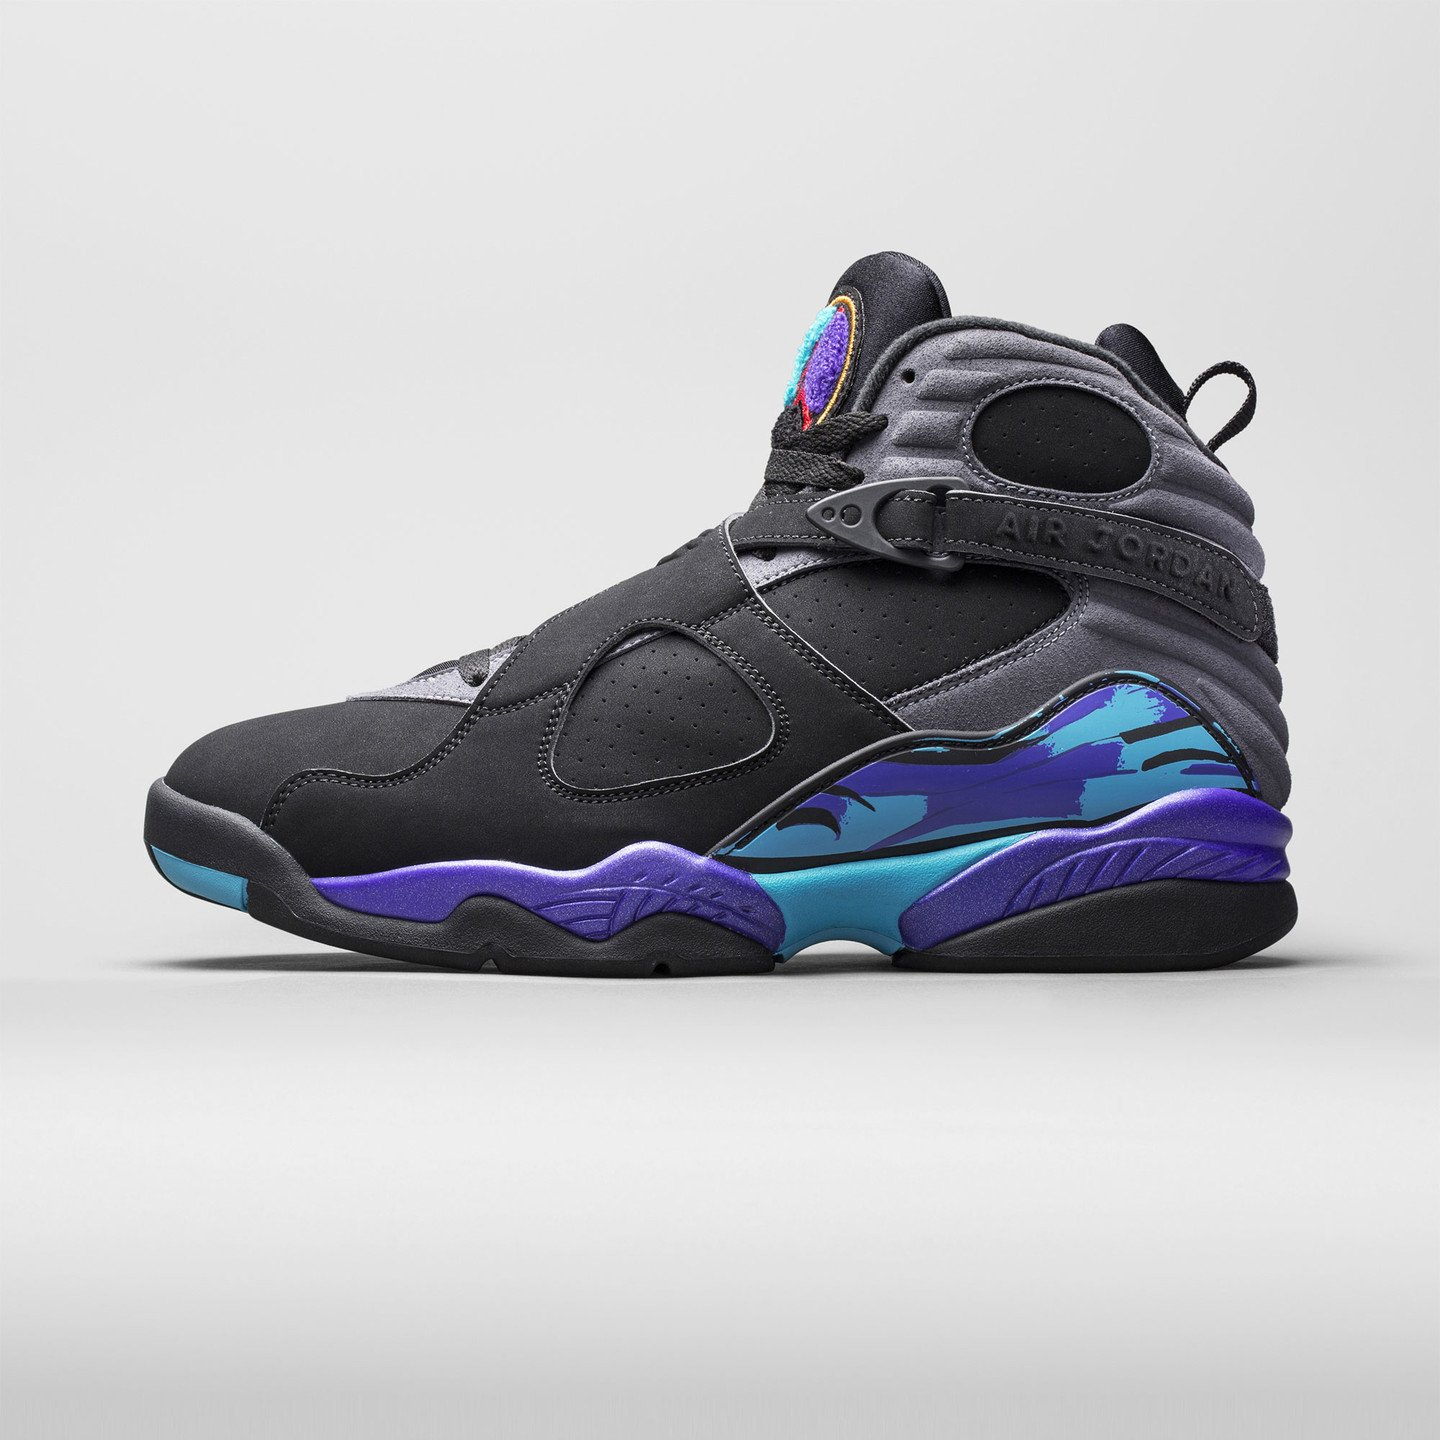 Jordan Air Jordan Retro 8 'Aqua' Black/True Red-Flint Grey-Bright Concord 305381-025-43